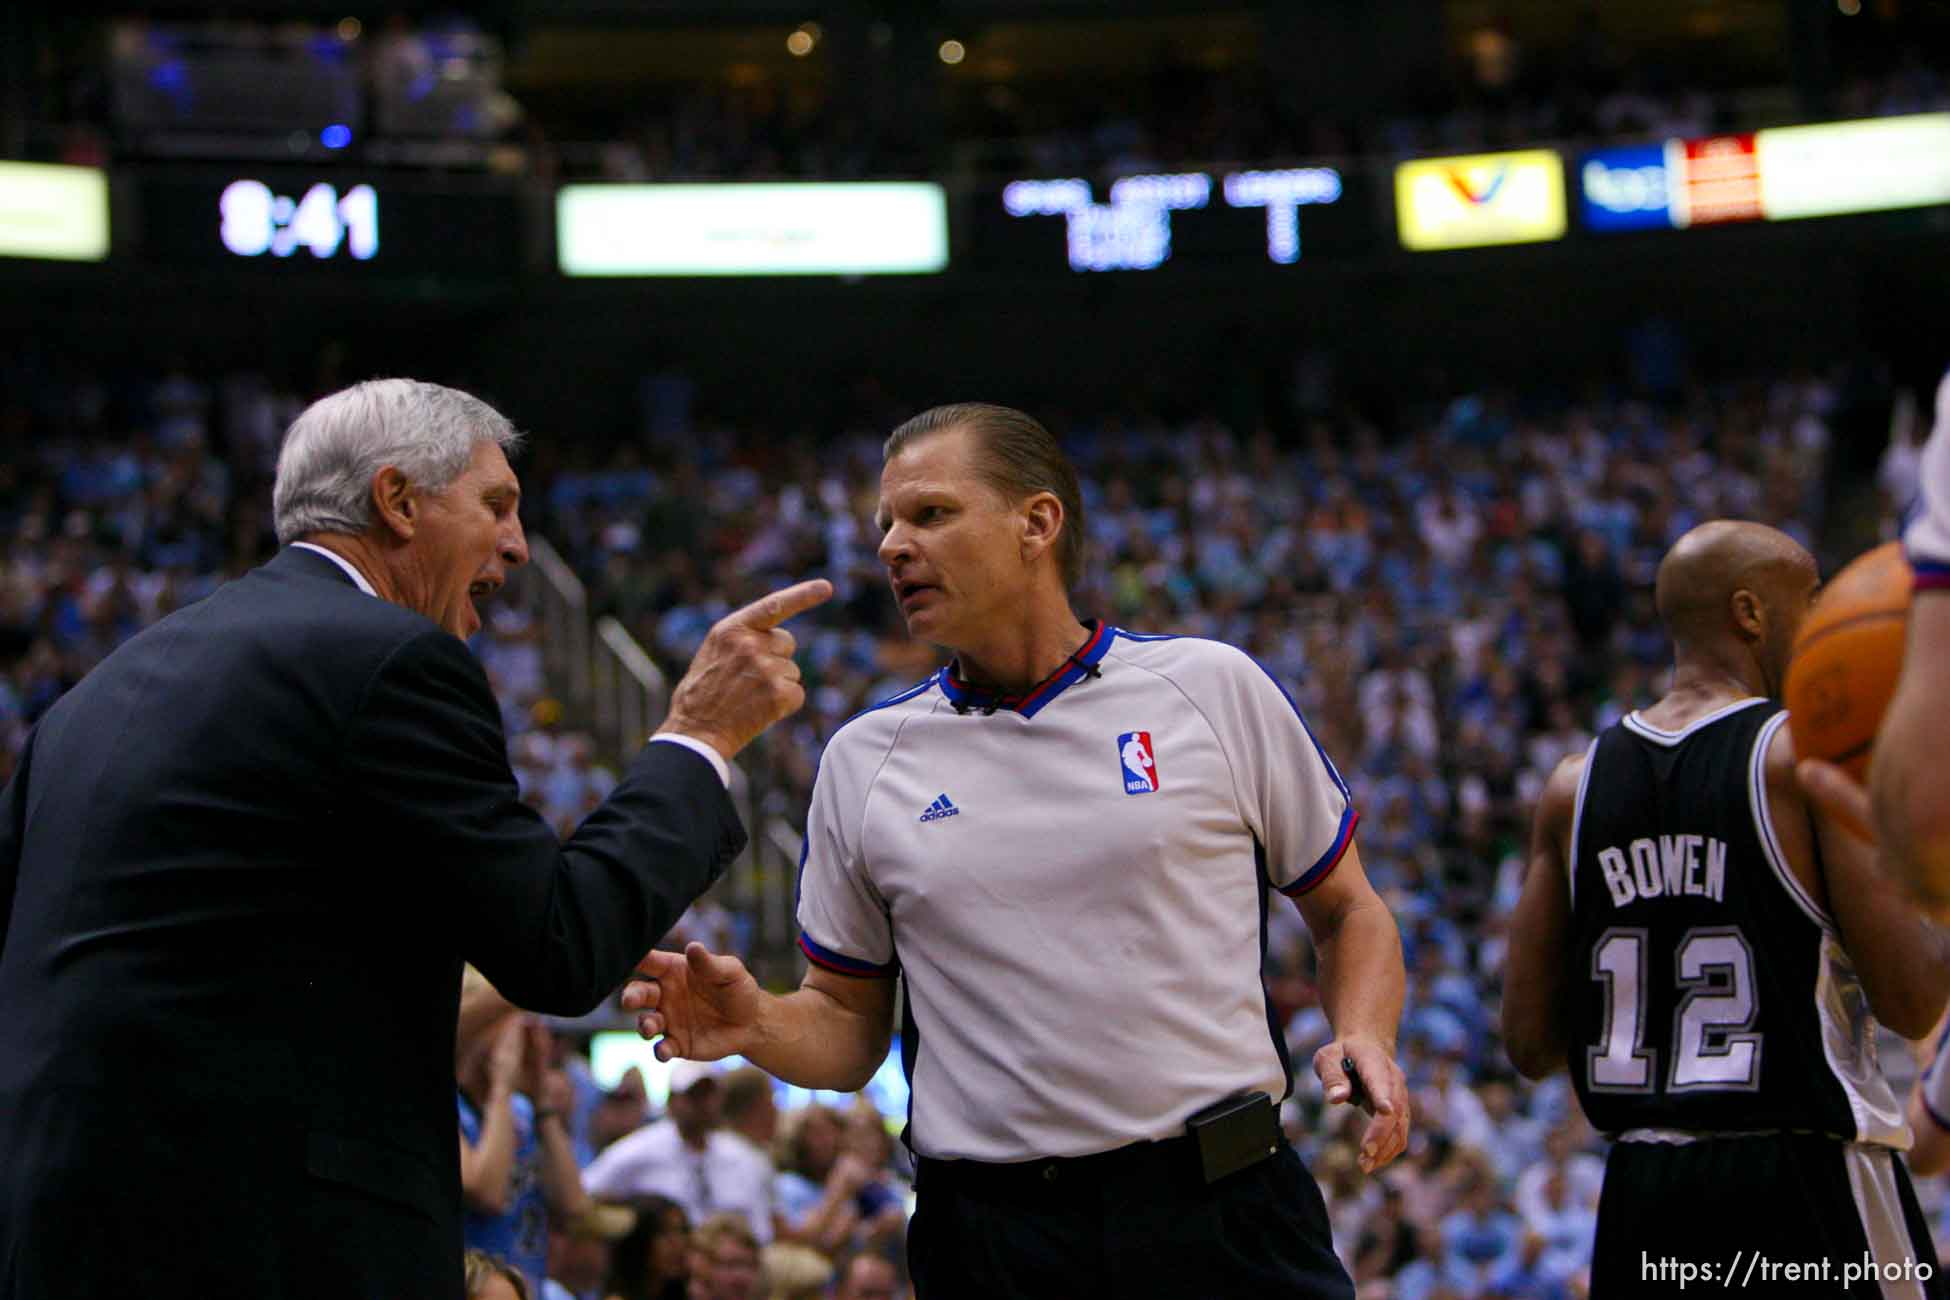 Salt Lake City - Jazz coach Jerry Sloan argues with referee Steve Javie in the 3rd quarter. Utah Jazz vs. San Antonio Spurs, Western Conference Finals game four at EnergySolutions Arena. 5.28.2007